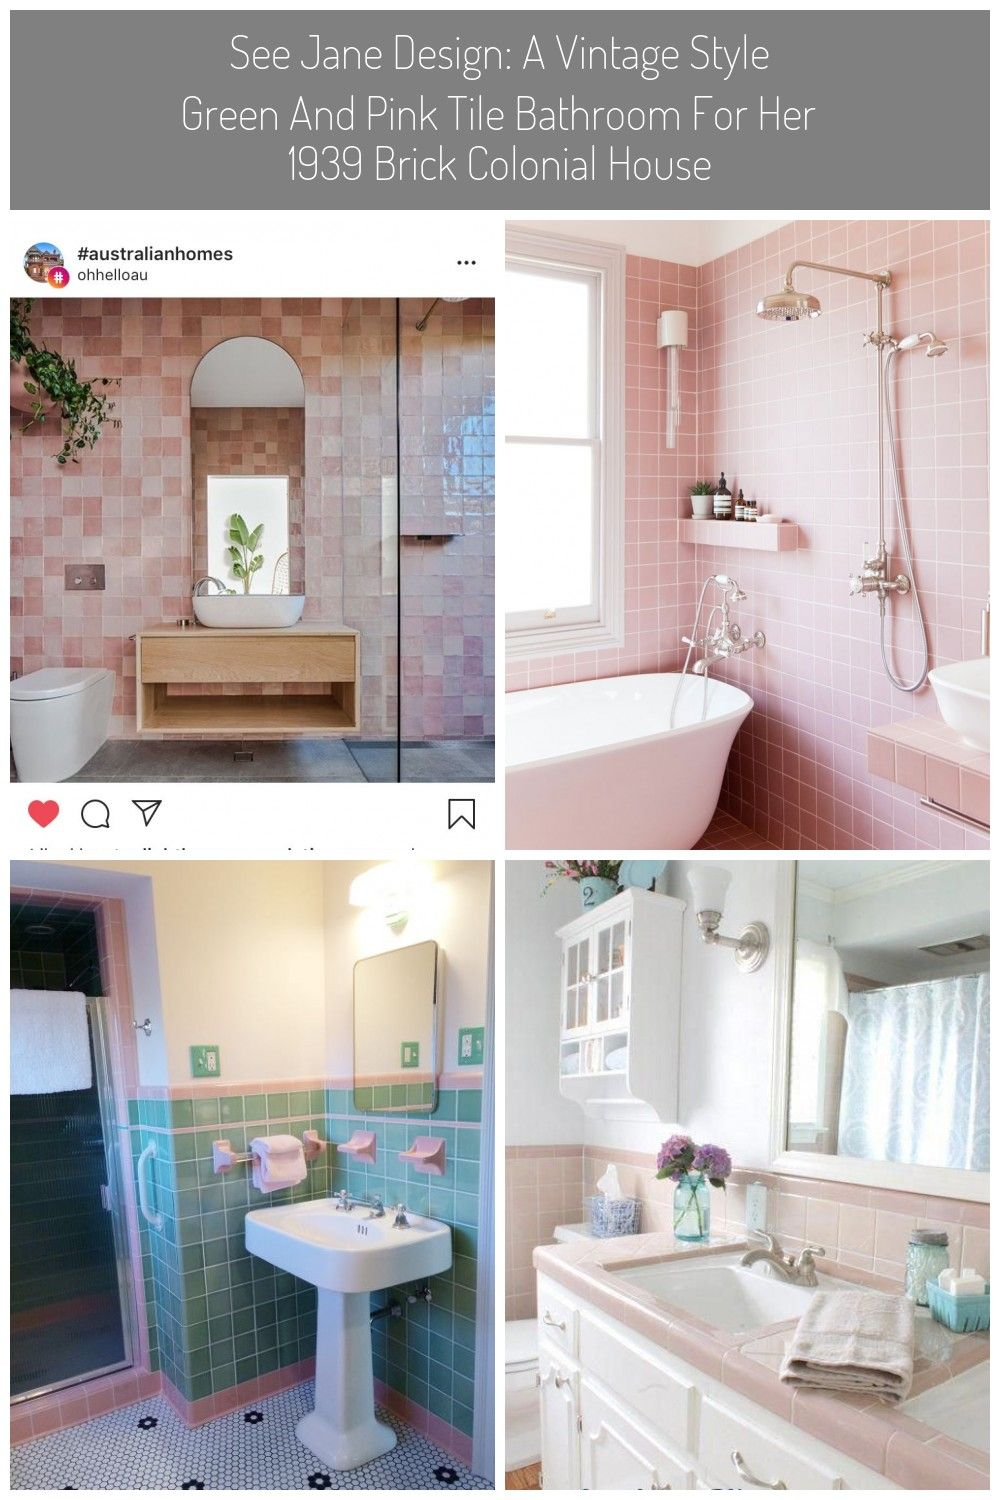 Badezimmer Rosa Fliesen In 2020 Pink Bathroom Tiles Australian Homes Green Tile Bathroom